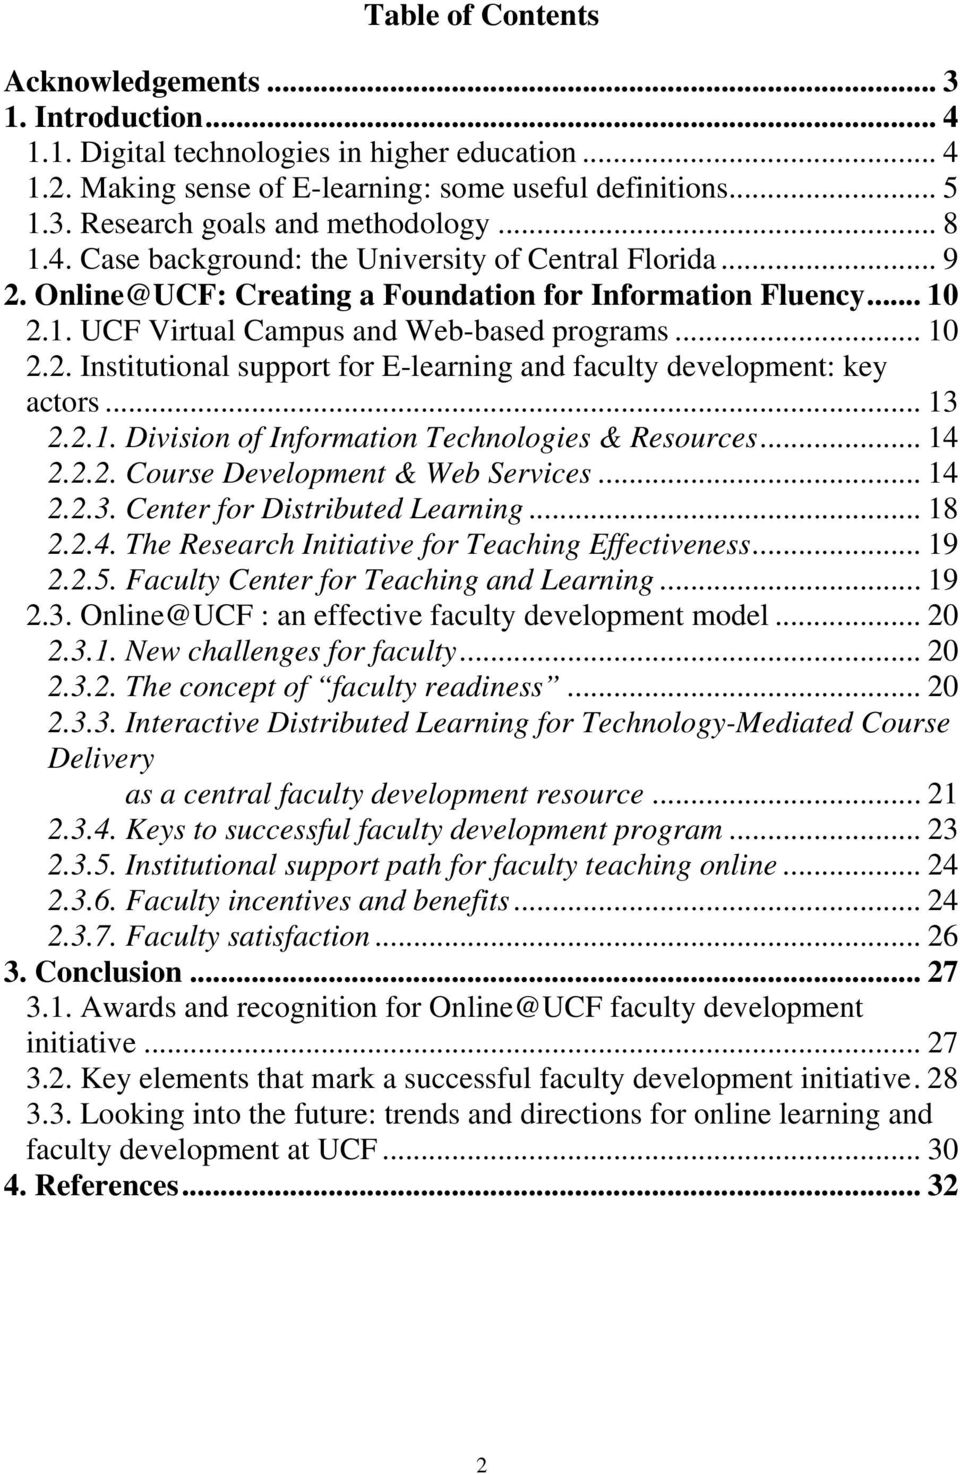 .. 13 2.2.1. Division of Information Technologies & Resources... 14 2.2.2. Course Development & Web Services... 14 2.2.3. Center for Distributed Learning... 18 2.2.4. The Research Initiative for Teaching Effectiveness.